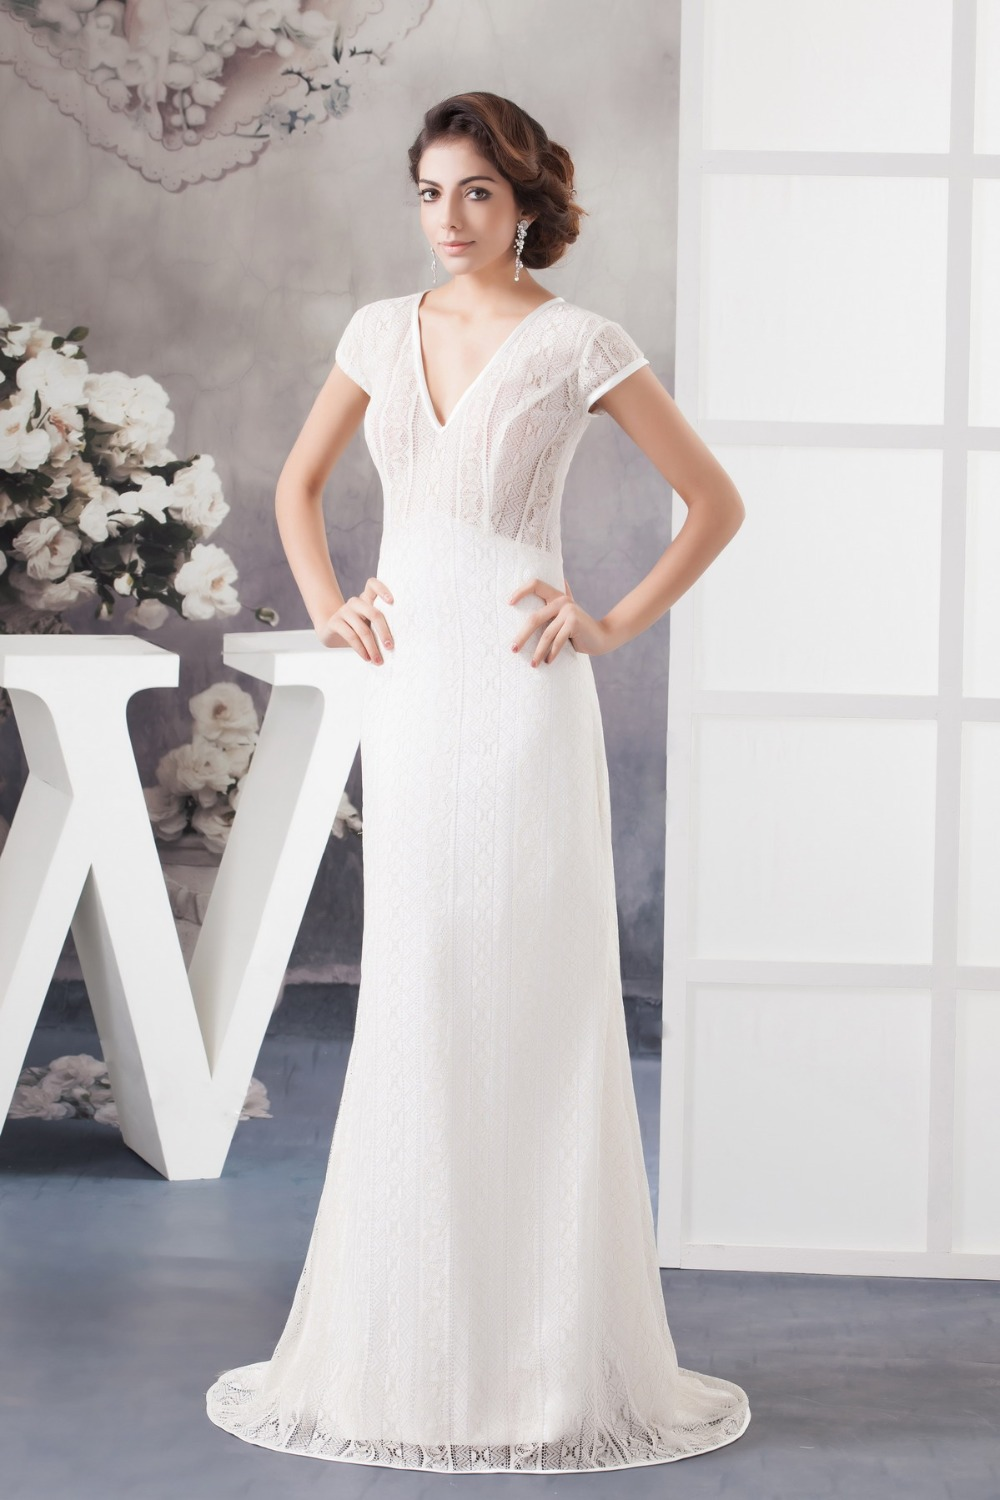 Bridal Gowns: bridal gowns mature